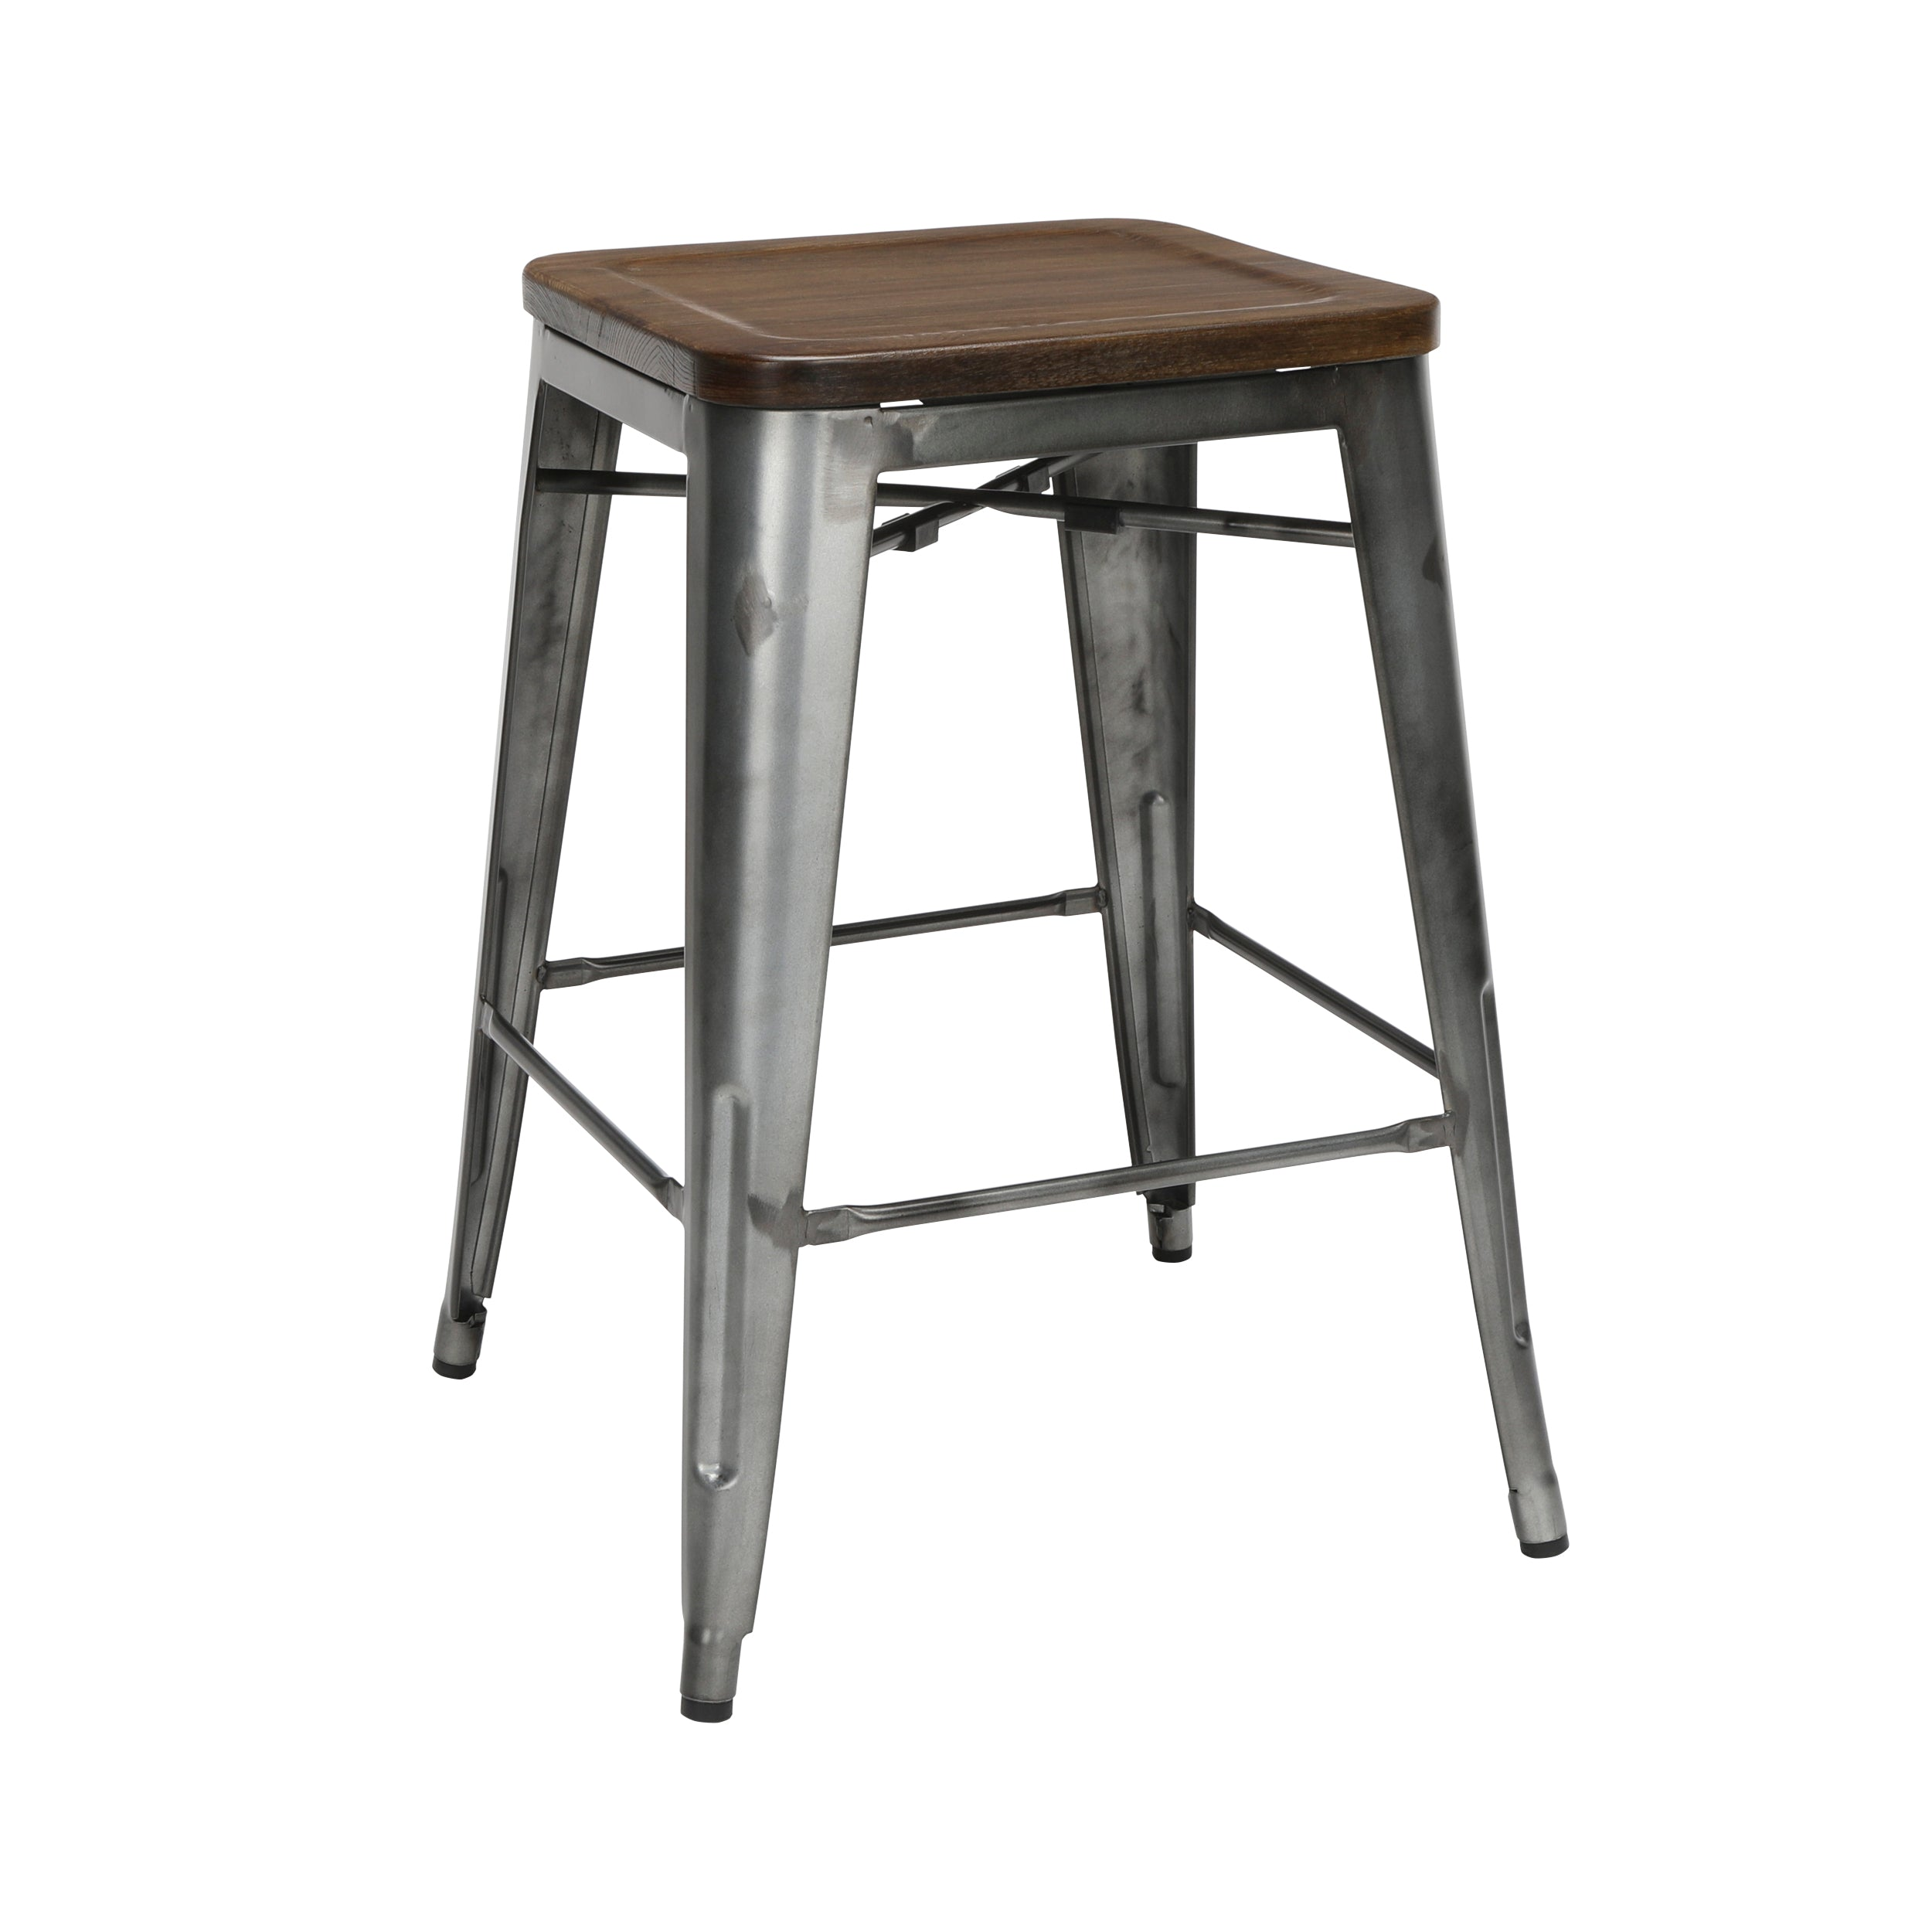 "26"" Backless Metal Solid Ash Wood Oversized Seat Steel BarStool"